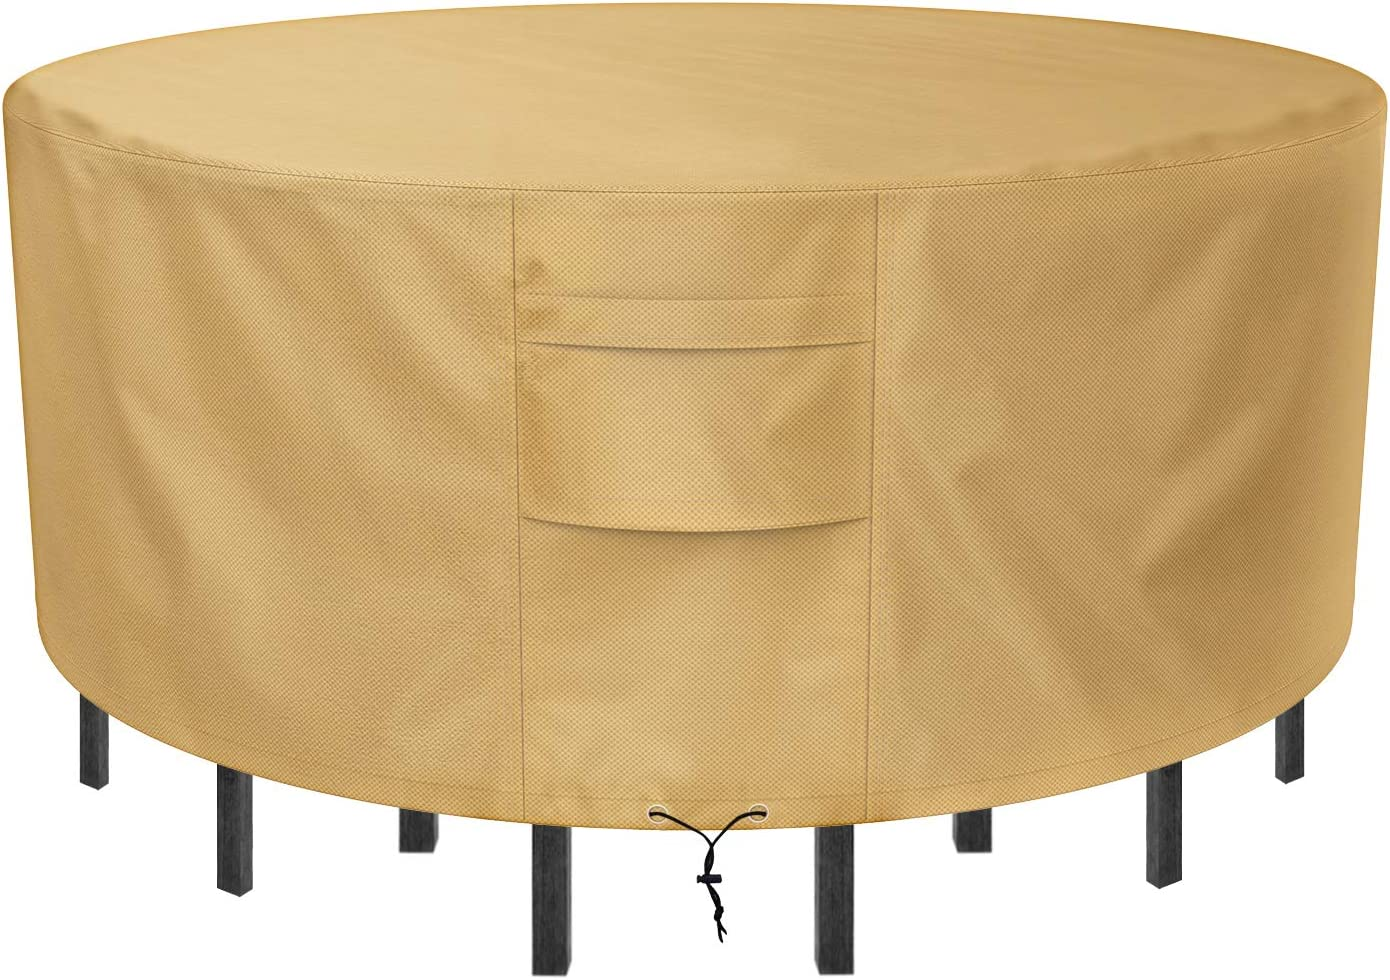 Sunkorto Round Patio Table & Chair Set Cover, Waterproof & Wear-Resistant Patio Furniture Cover, 94 inch Diameter, Light Brown: Kitchen & Dining